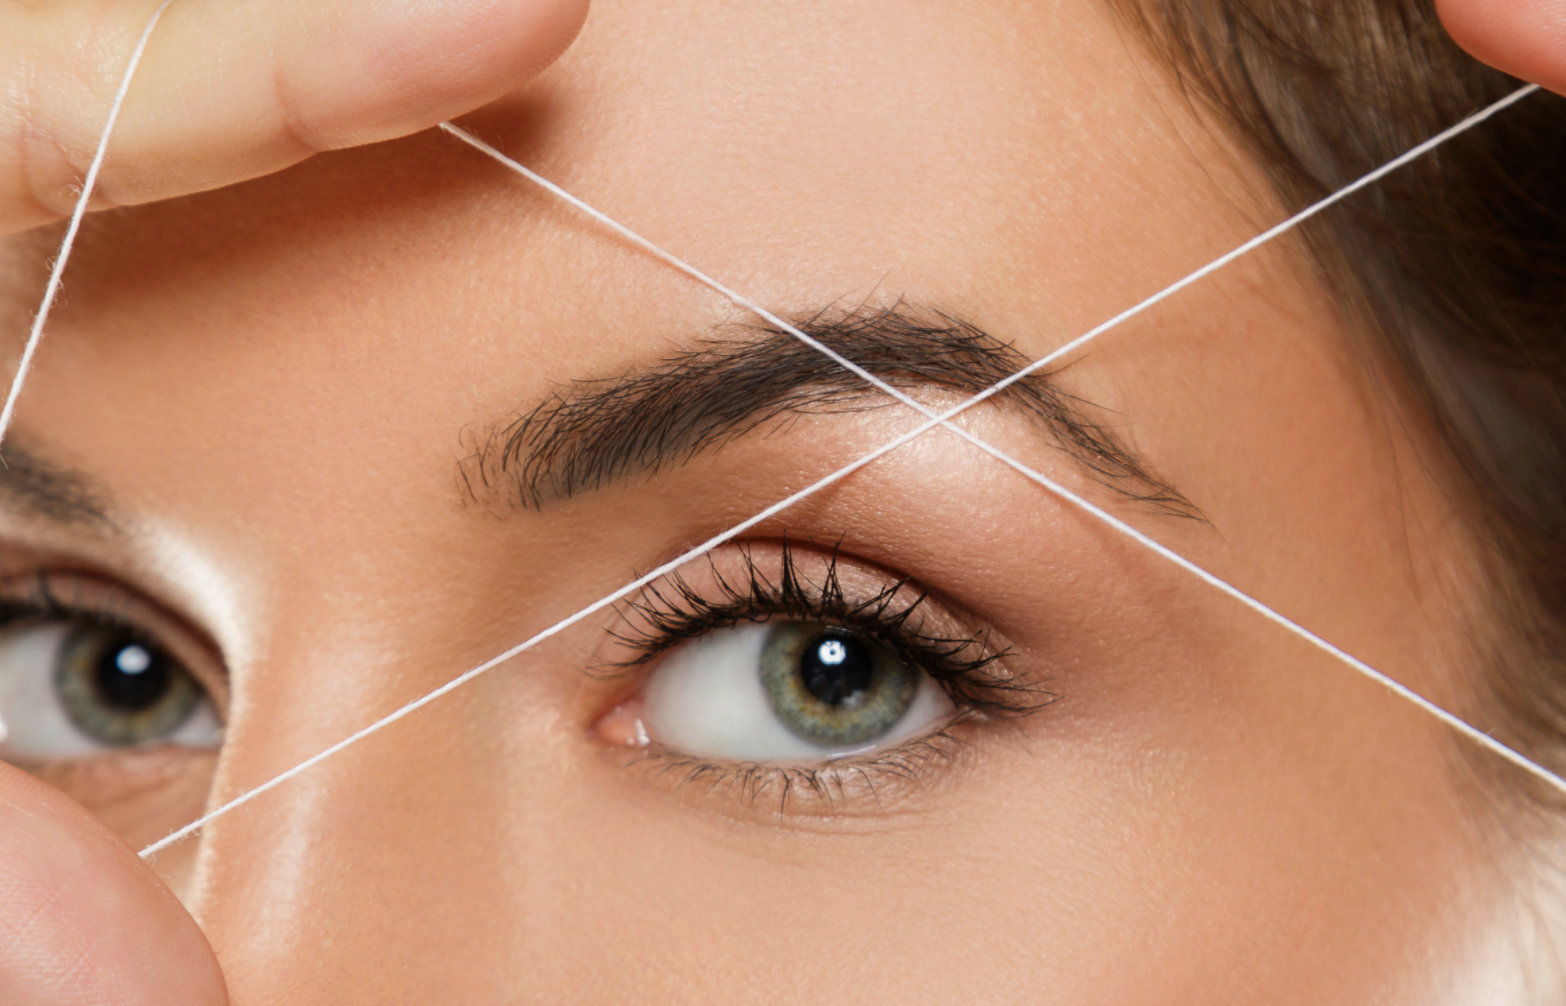 Threading is one of the Ways to remove unwanted hair